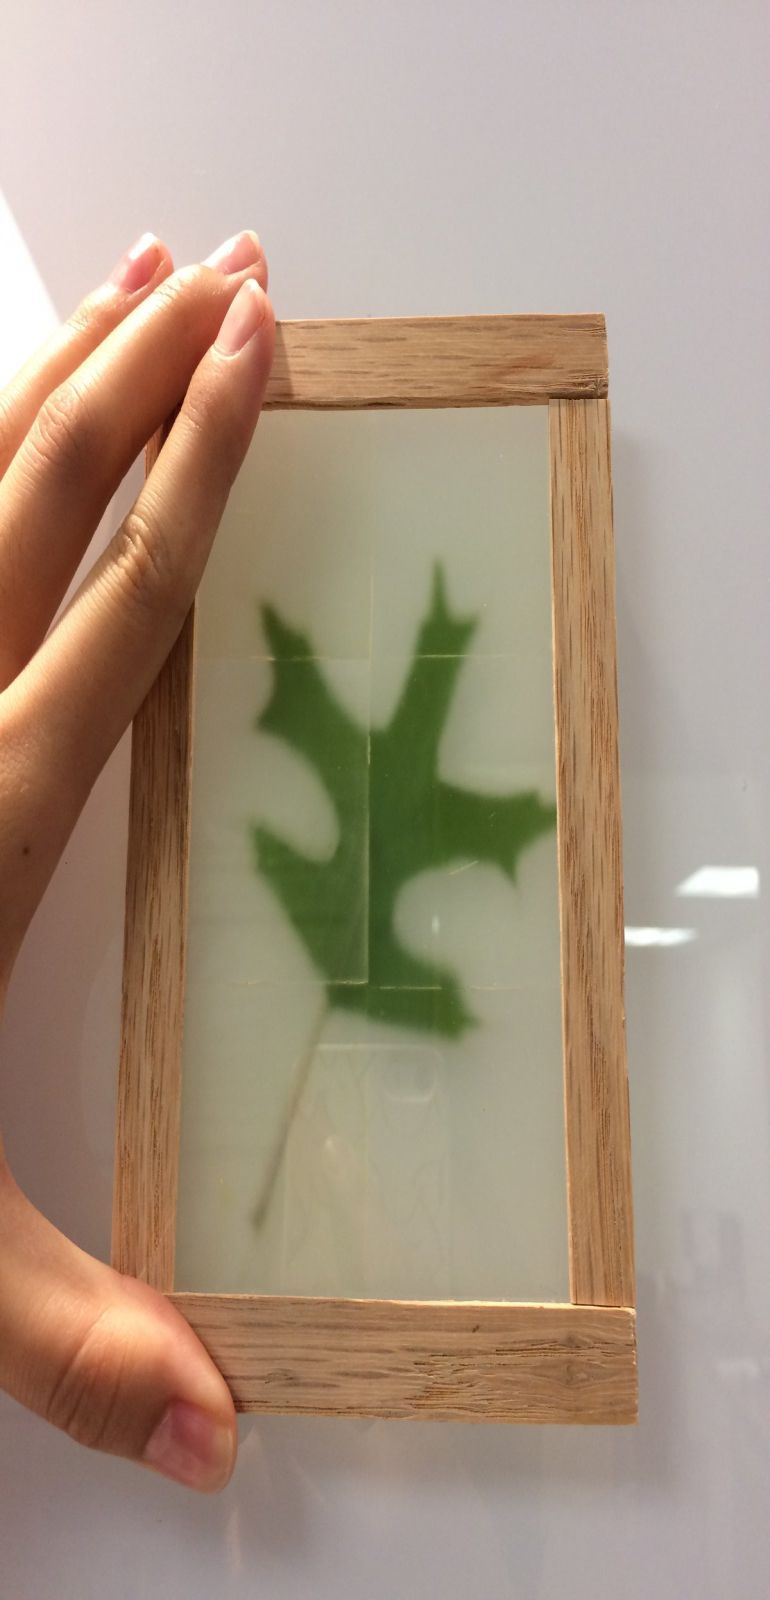 Scientists Have Developed See-Through Wood That Is Incredibly Strong-1